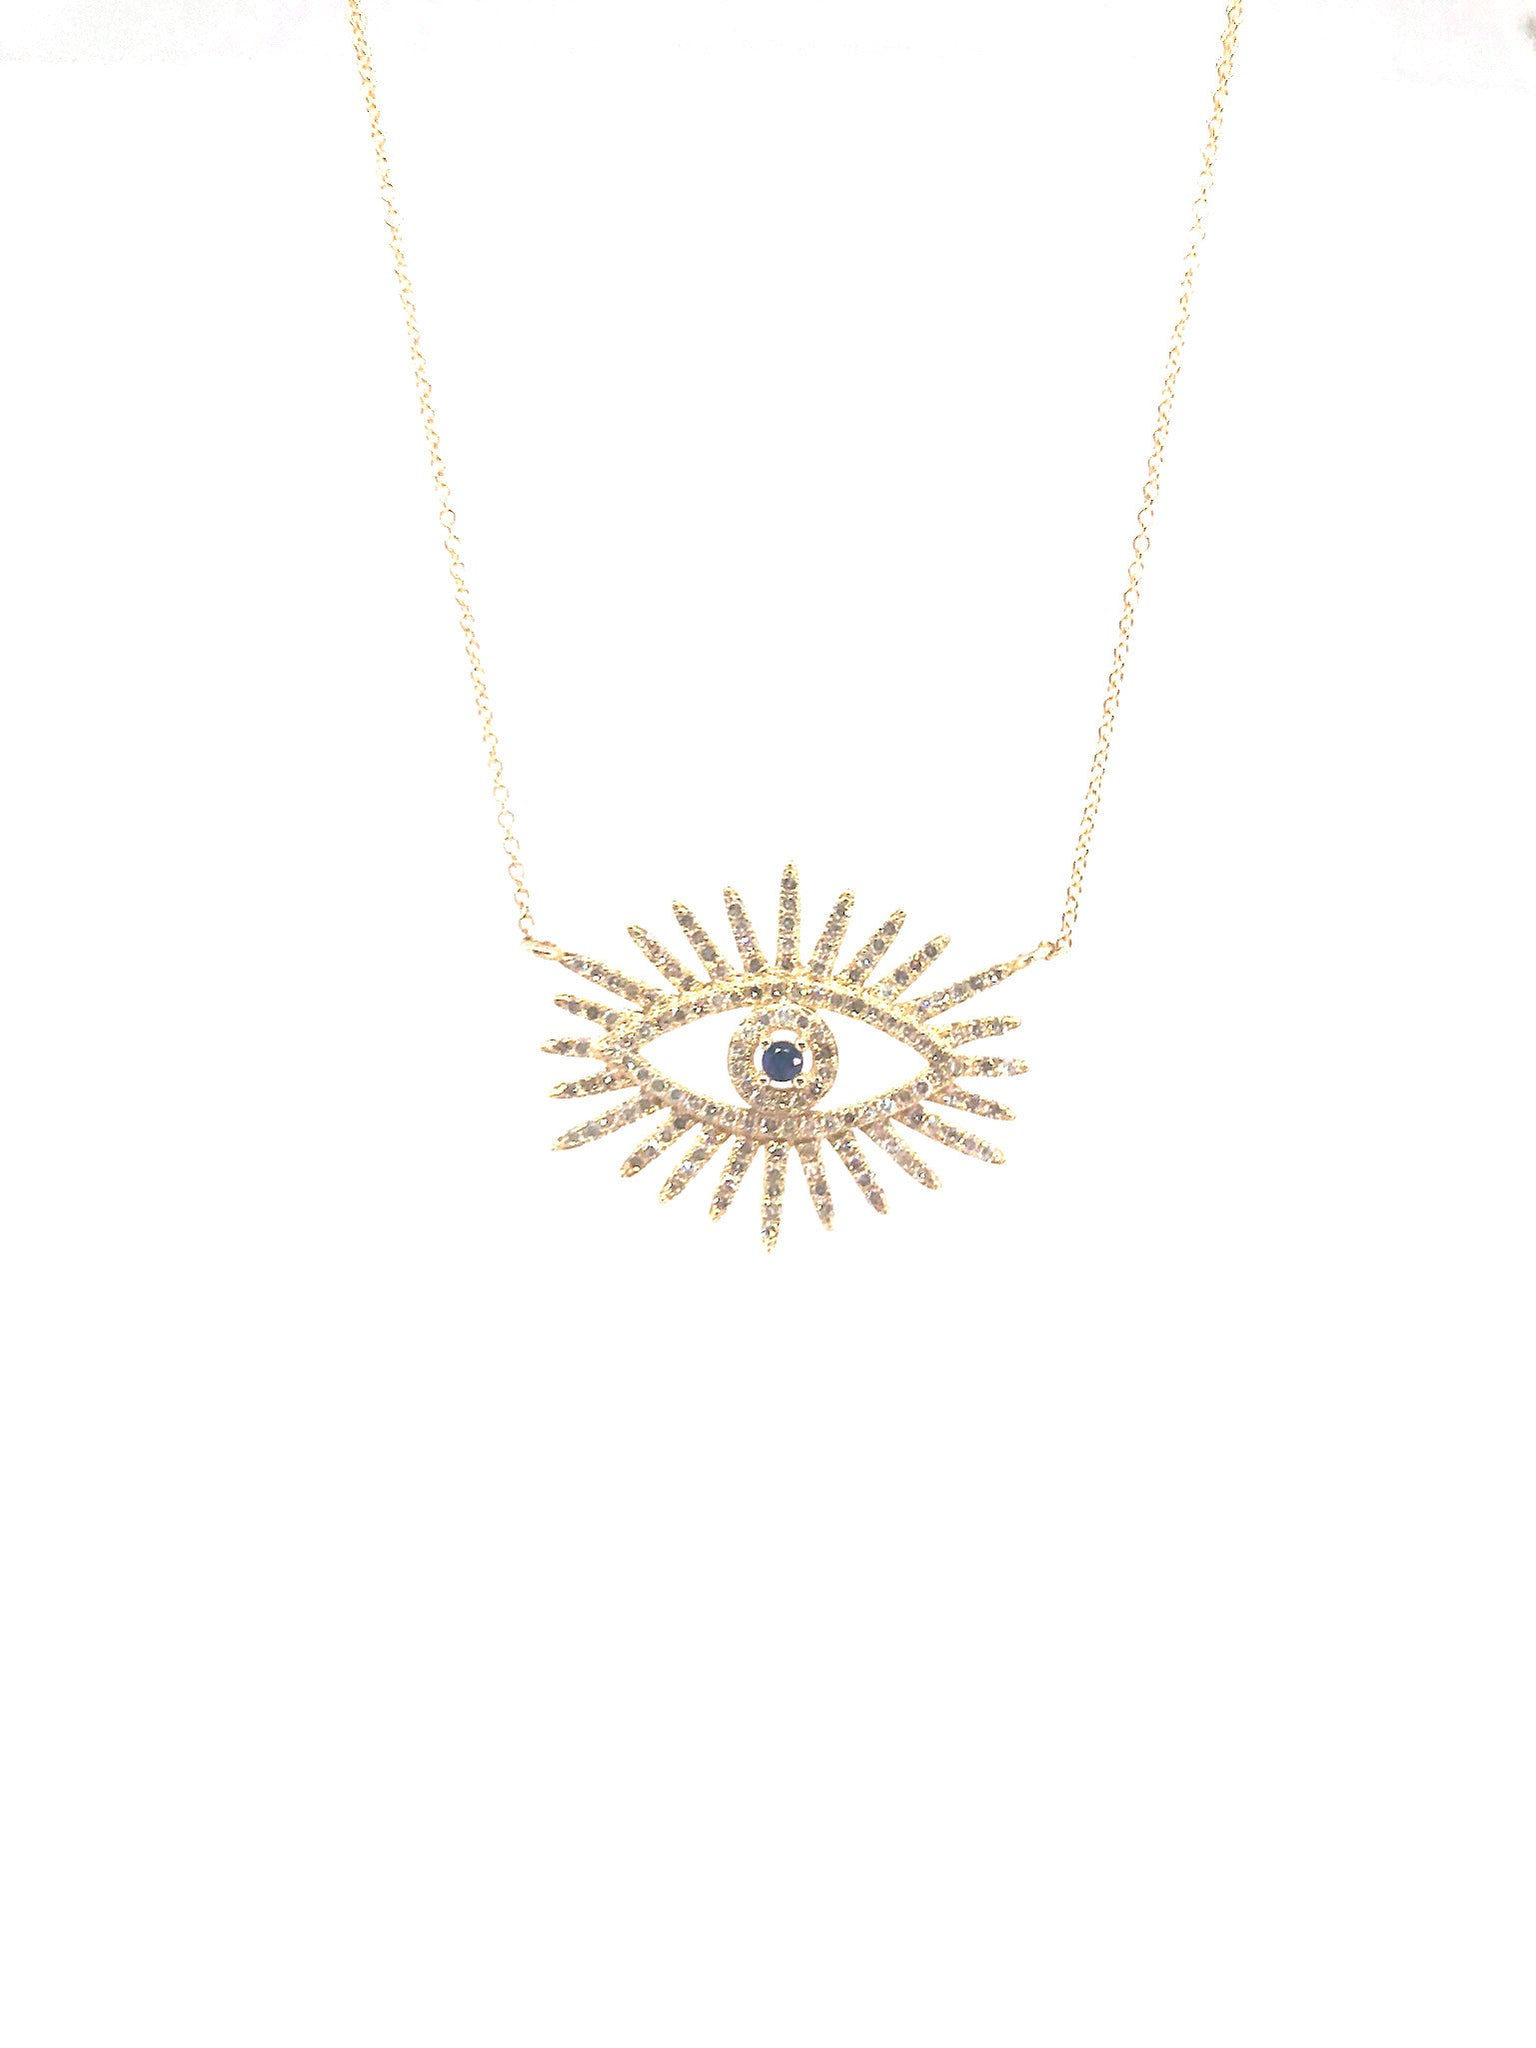 Evil Eye Neclace in Gold and Diamonds